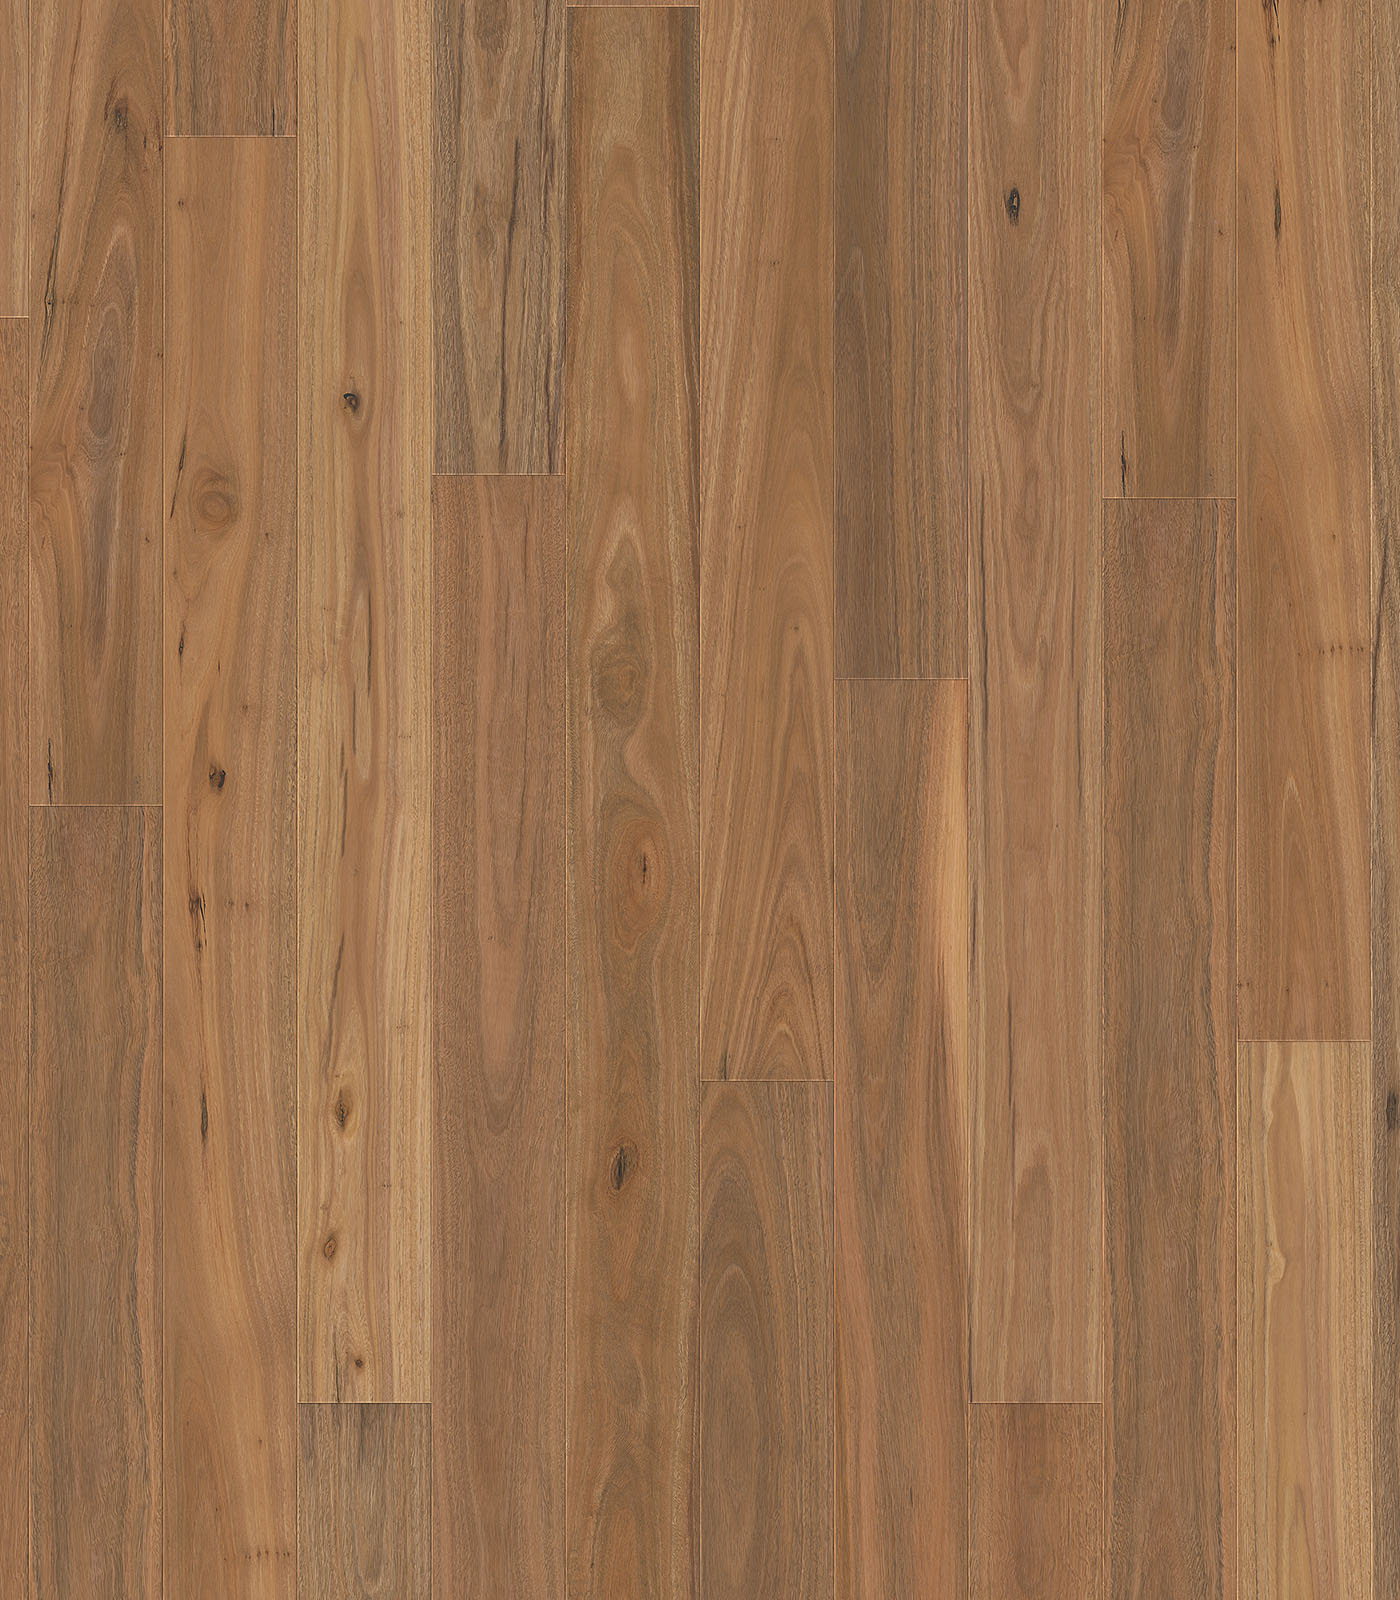 Spotted Gum Woodline Parquetry